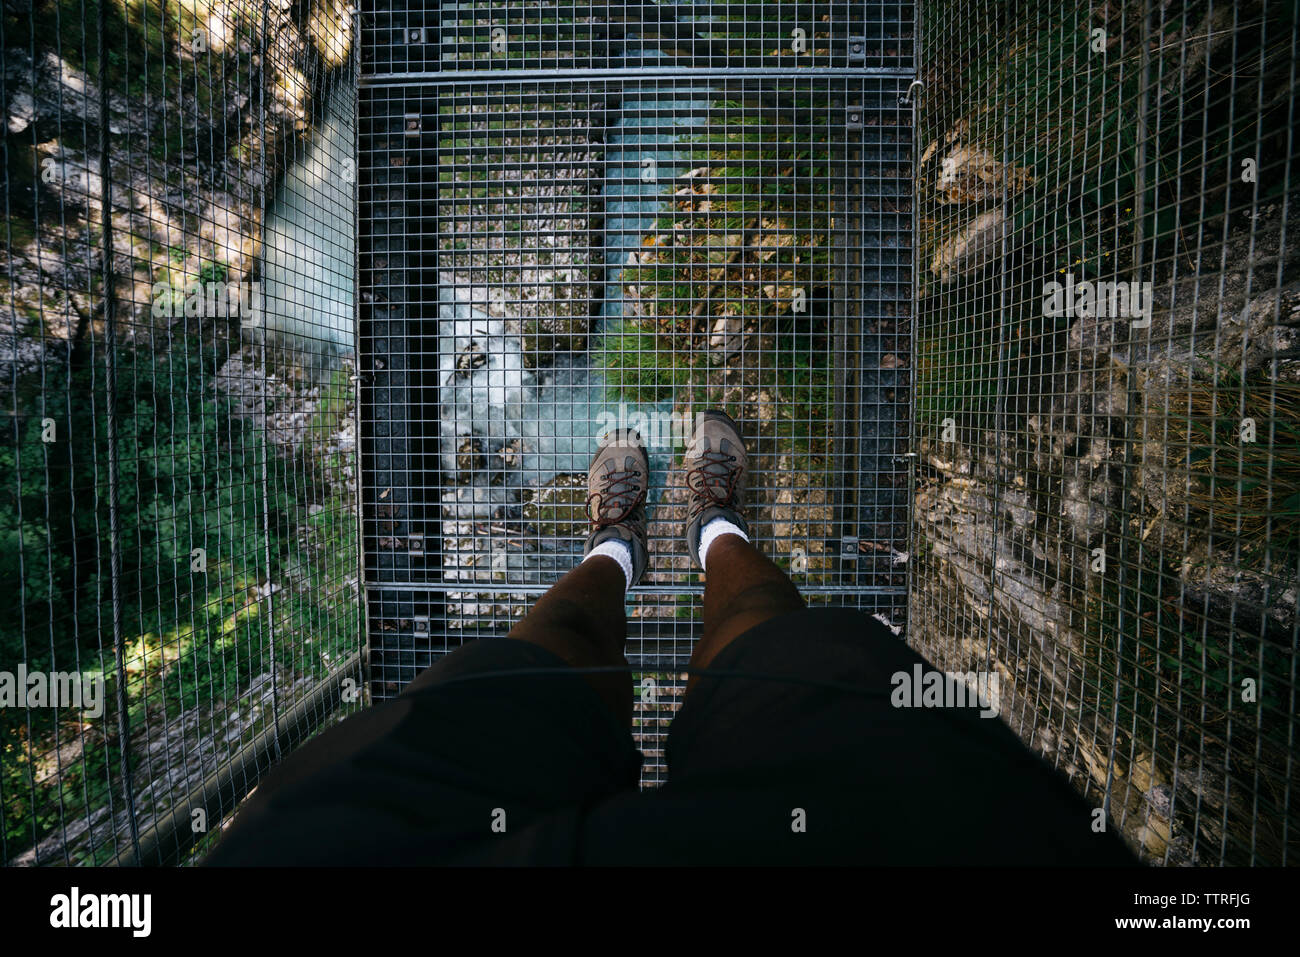 Low section of hiker on metallic footbridge over stream at forest - Stock Image